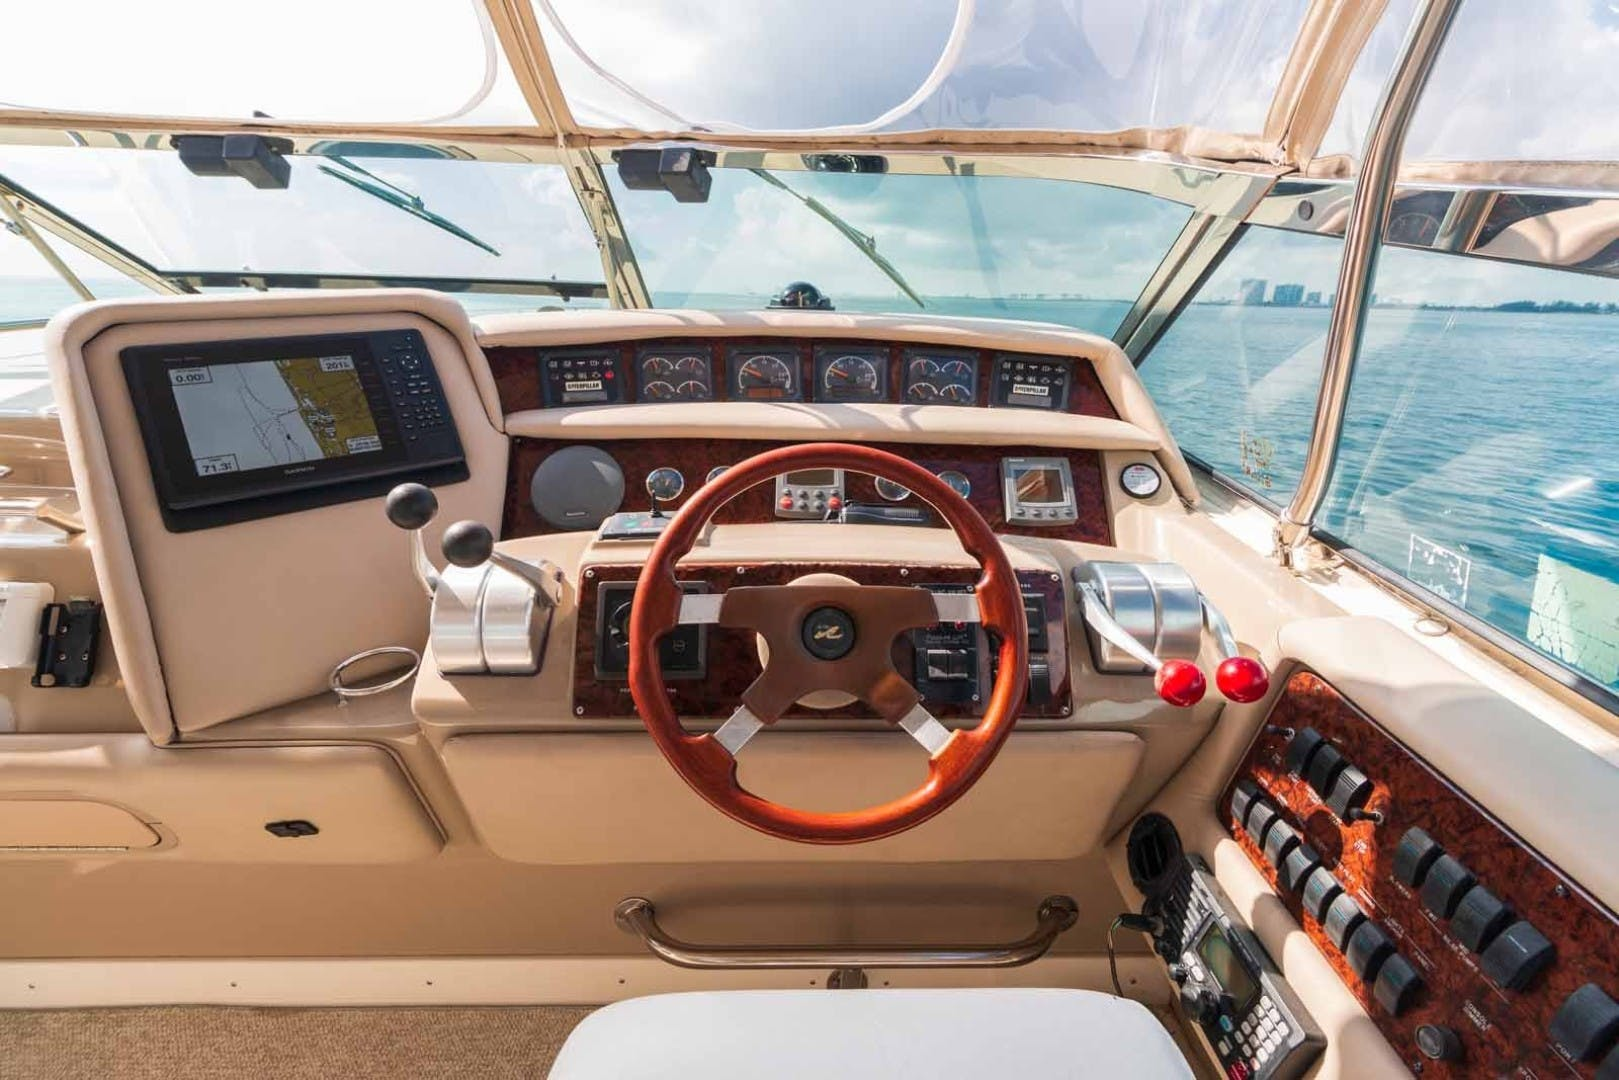 1999 Sea Ray 63' Super Sun Sport DAPHNE EXPRESS | Picture 1 of 44